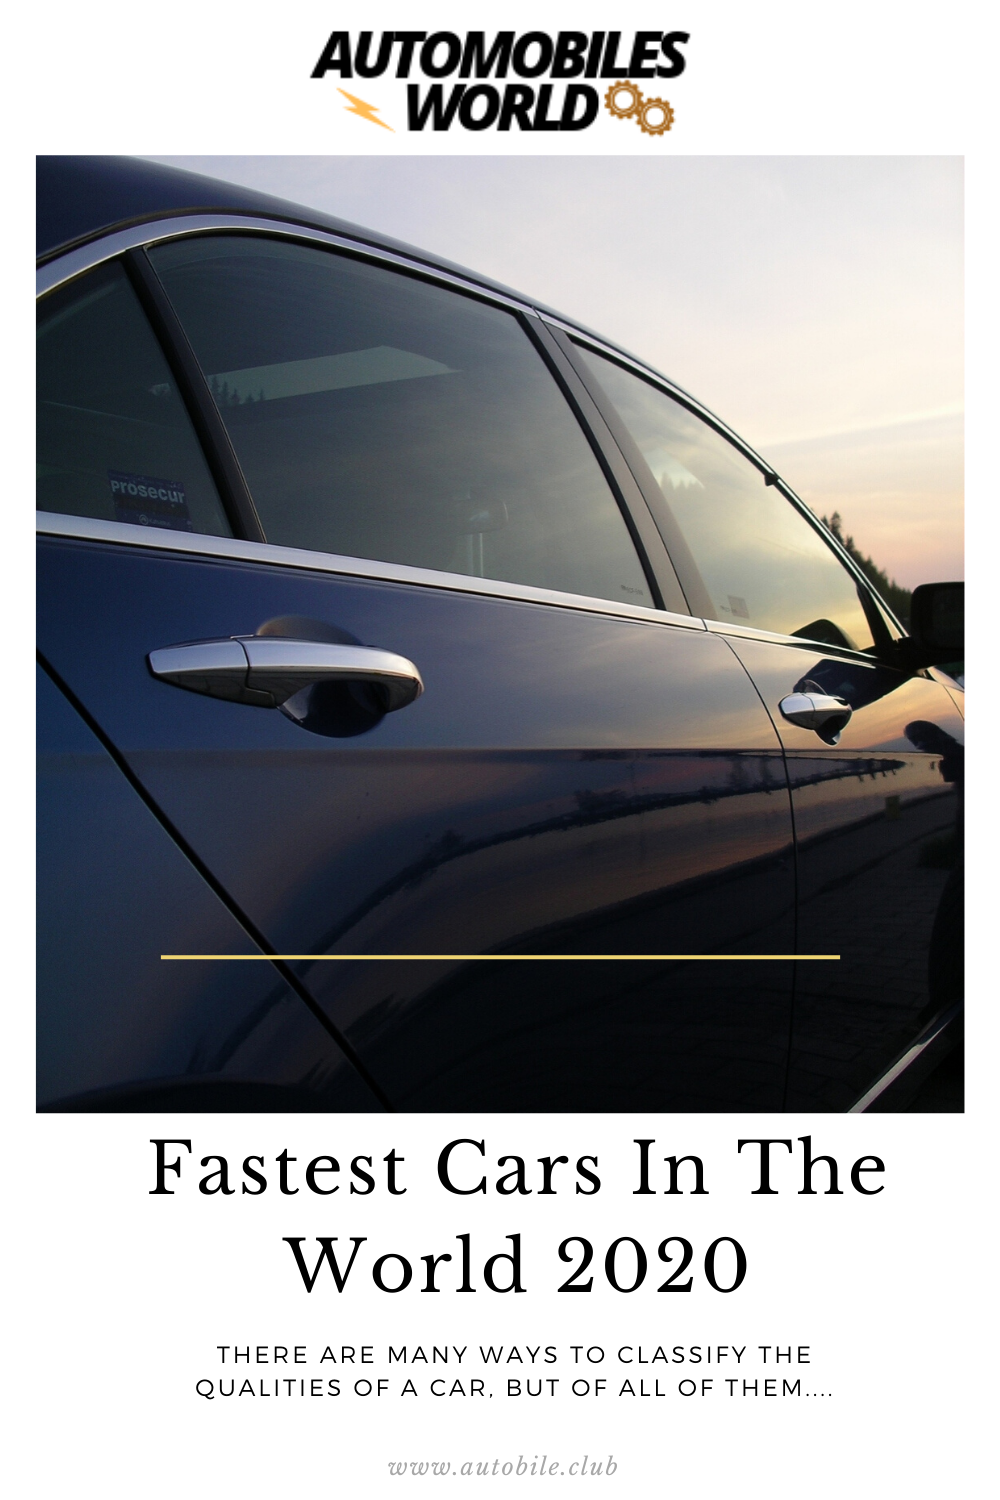 Fastest Cars In The World 2020 In 2020 Car Insurance Car In The